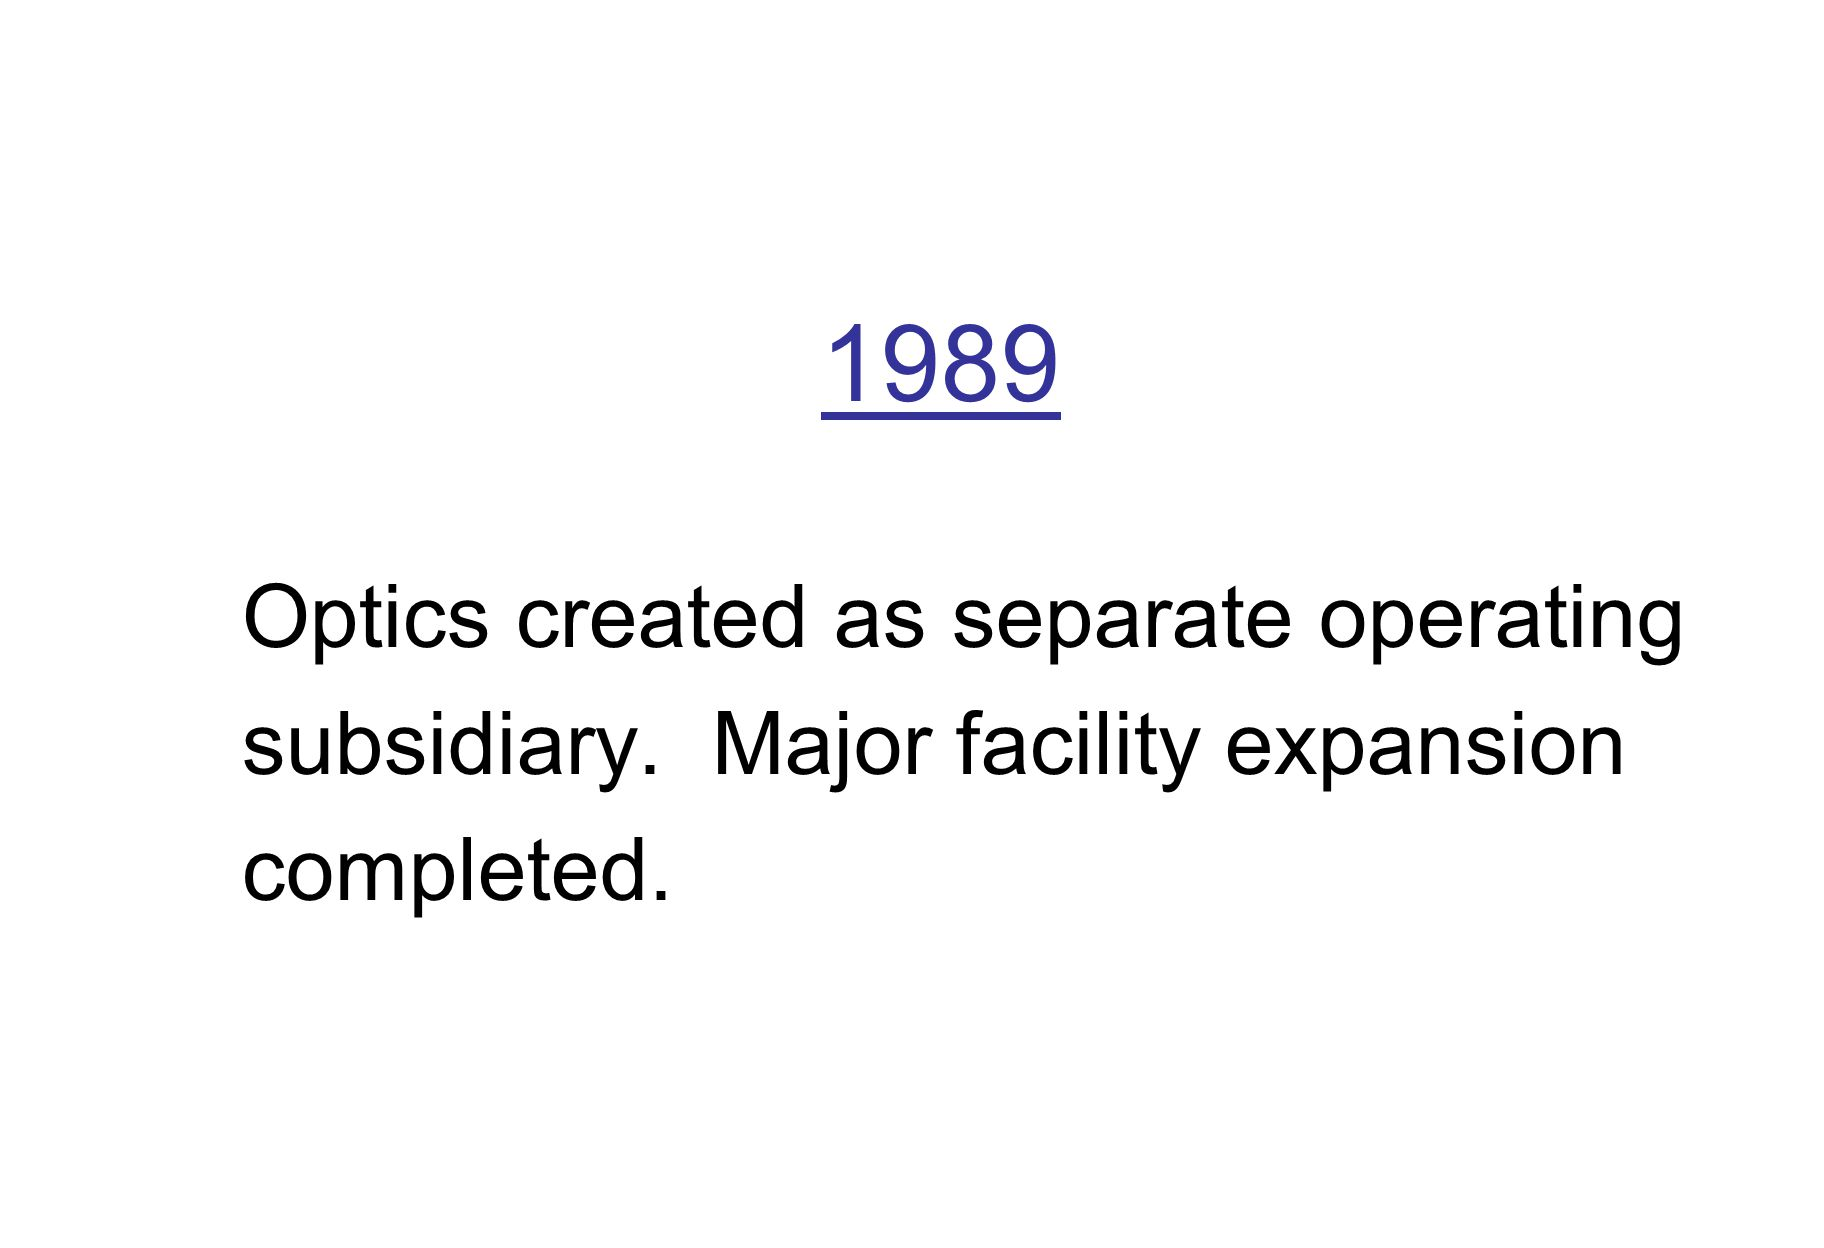 1989 Optics created as separate operating subsidiary. Major facility expansion completed.